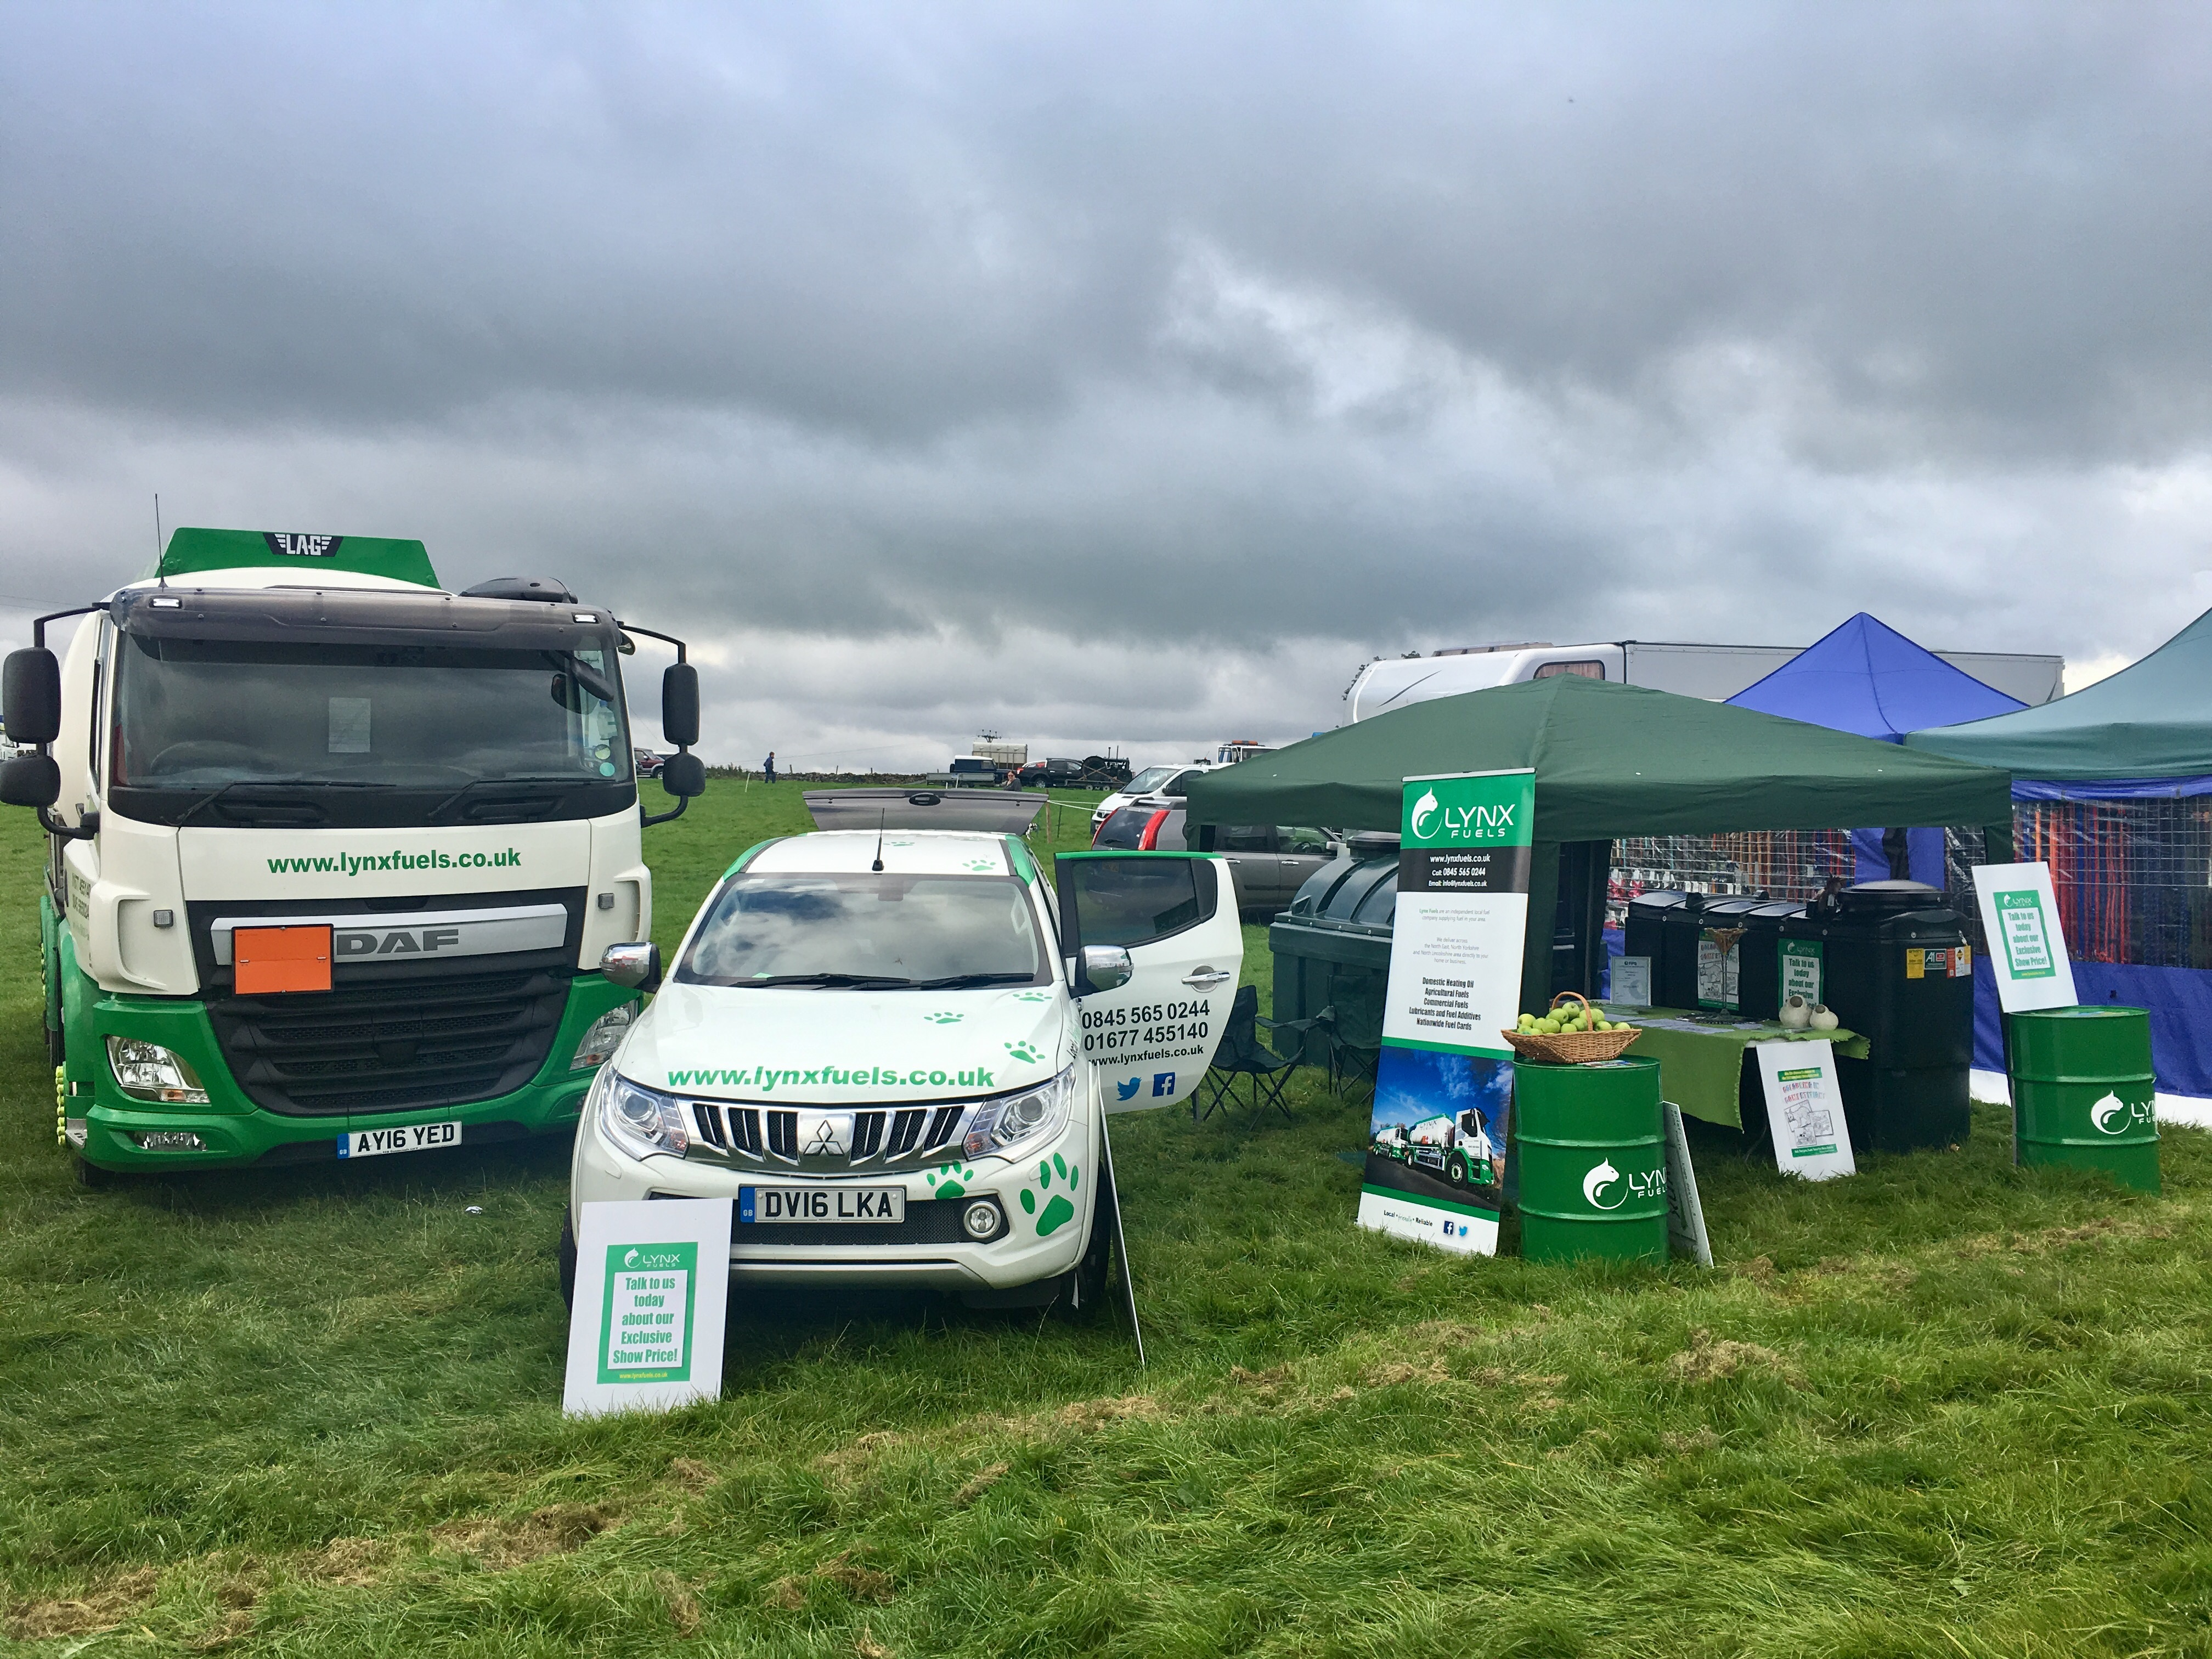 Lynx Fuels joined in the community spirit at the Wensleydale Show!